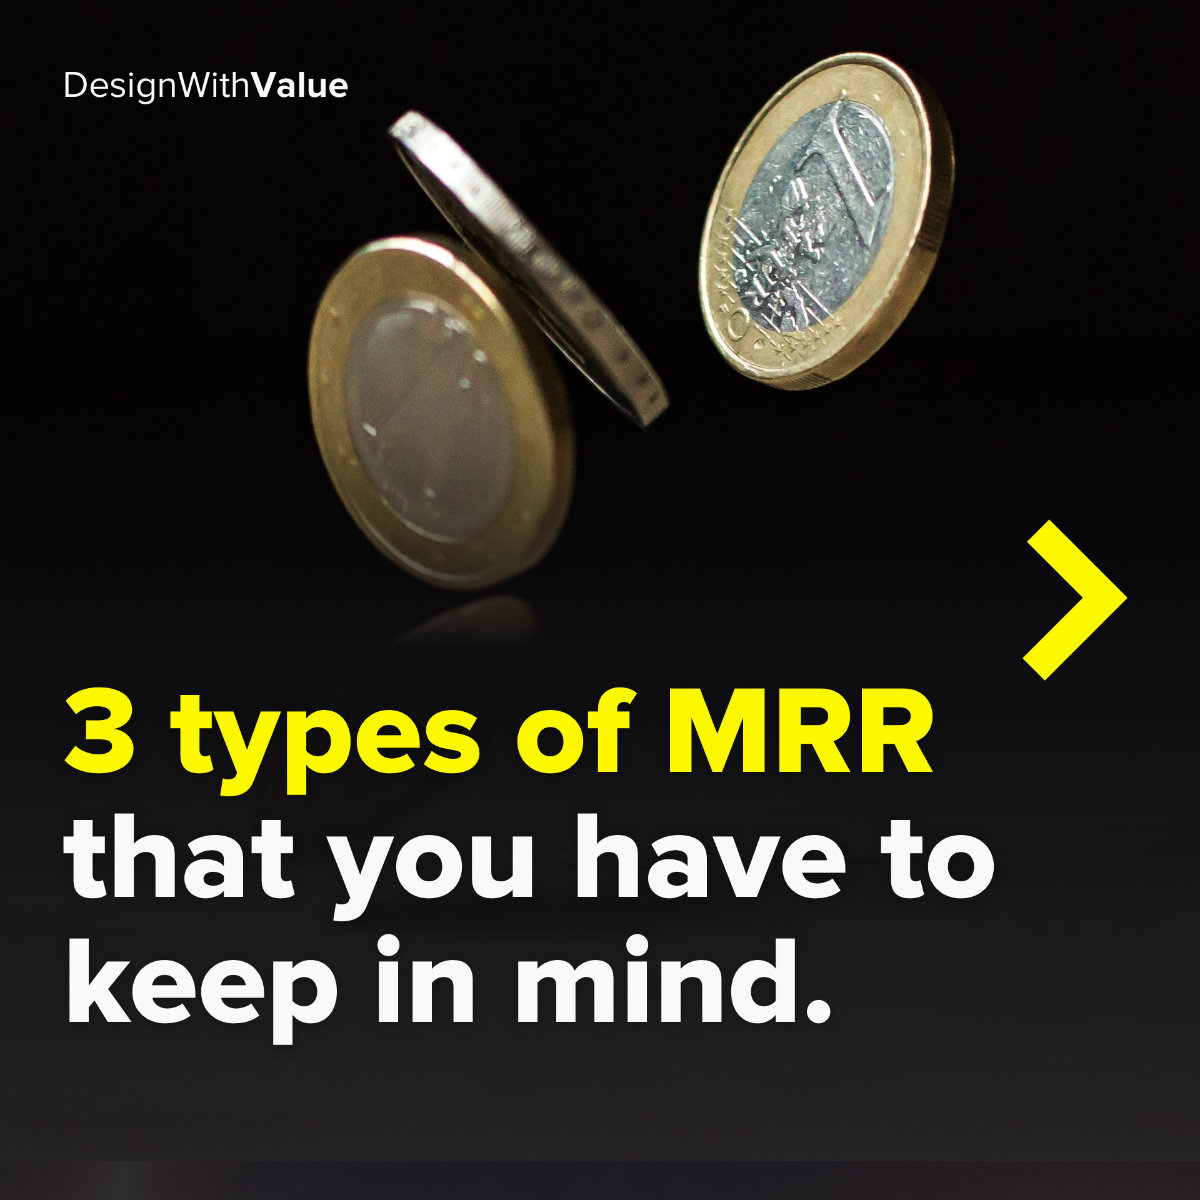 3 types of MRR that you have to keep in mind